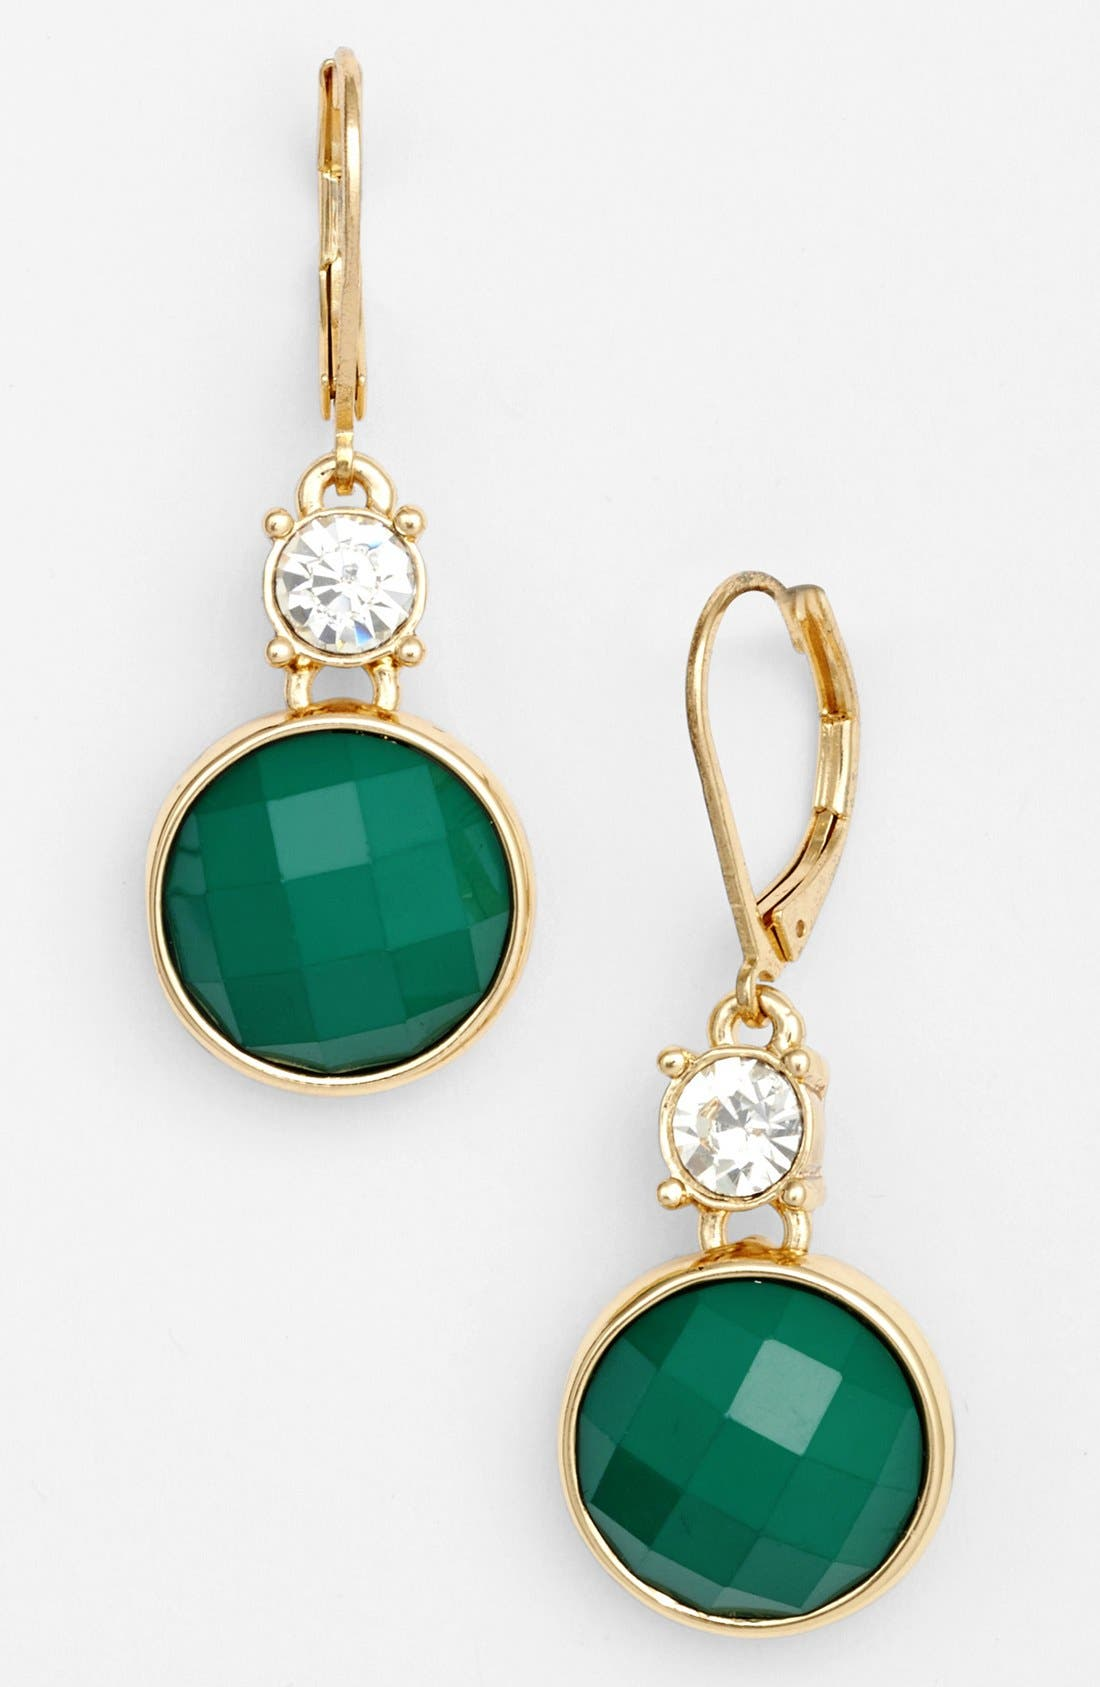 Main Image - Anne Klein Drop Earrings